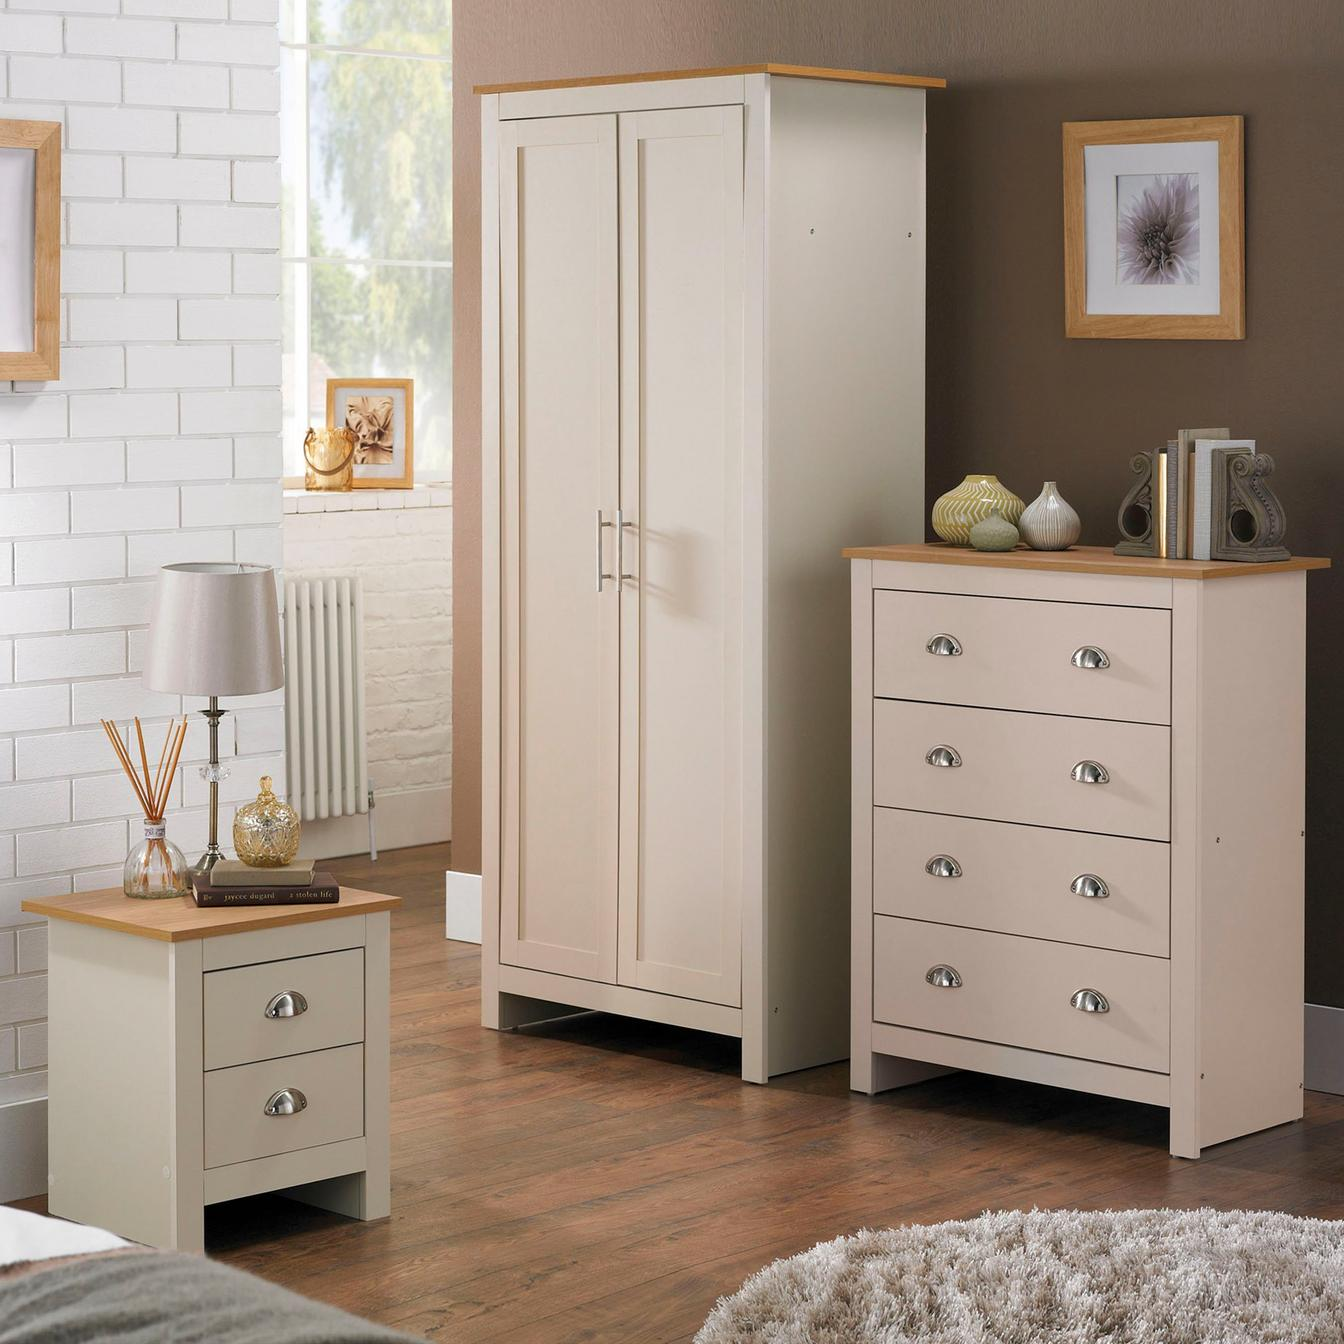 details about 3 piece lancaster bedroom set in cream or grey